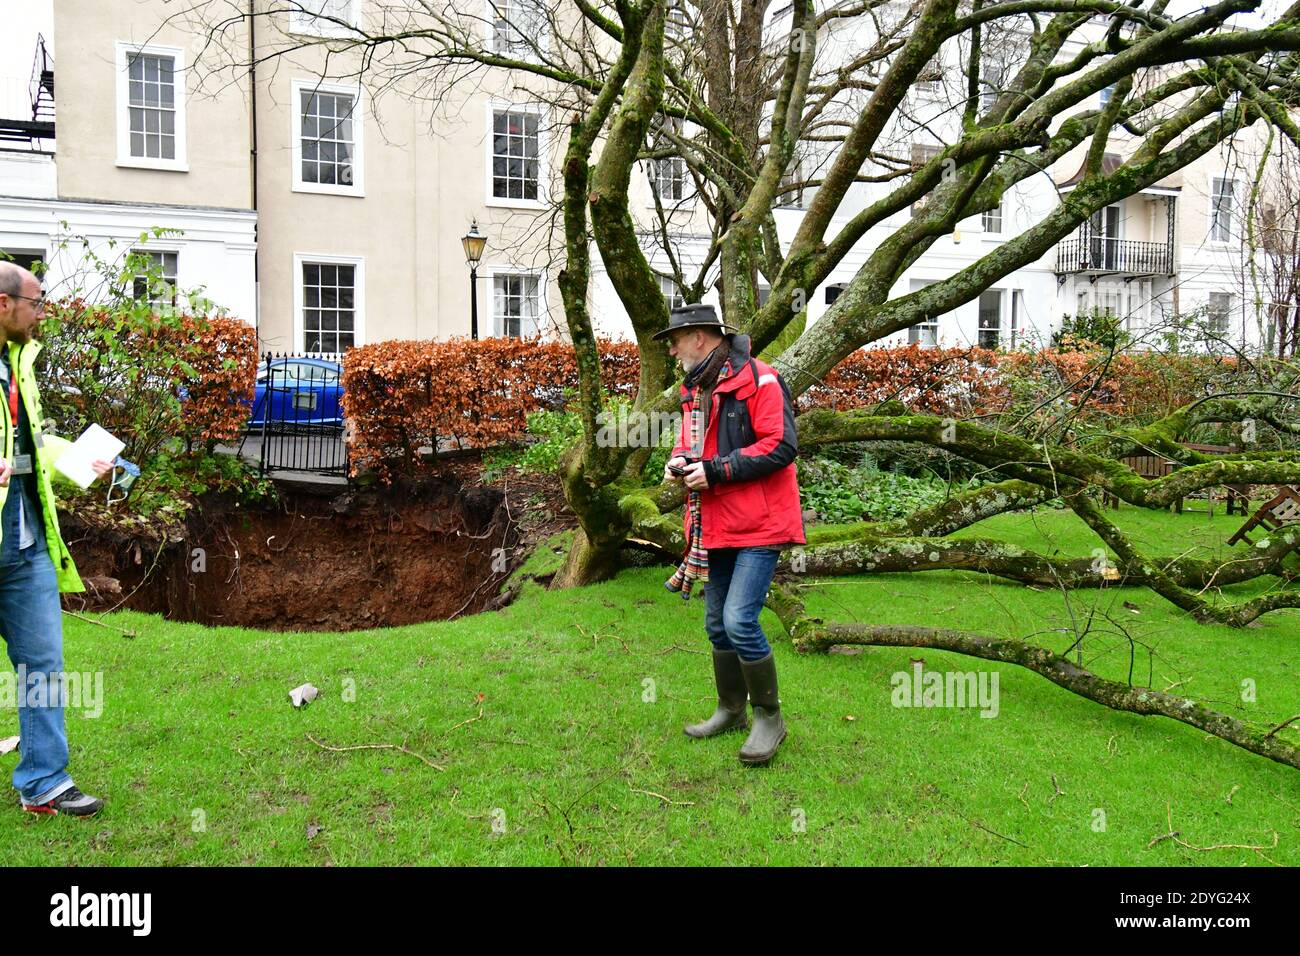 Bristol, UK. 26th Dec, 2020. UK Bristol. Canynge Square in Clifton Village A Large Sinkhole with tree opens up in residents private gardens. Picture Credit: Robert Timoney/Alamy Live News Stock Photo